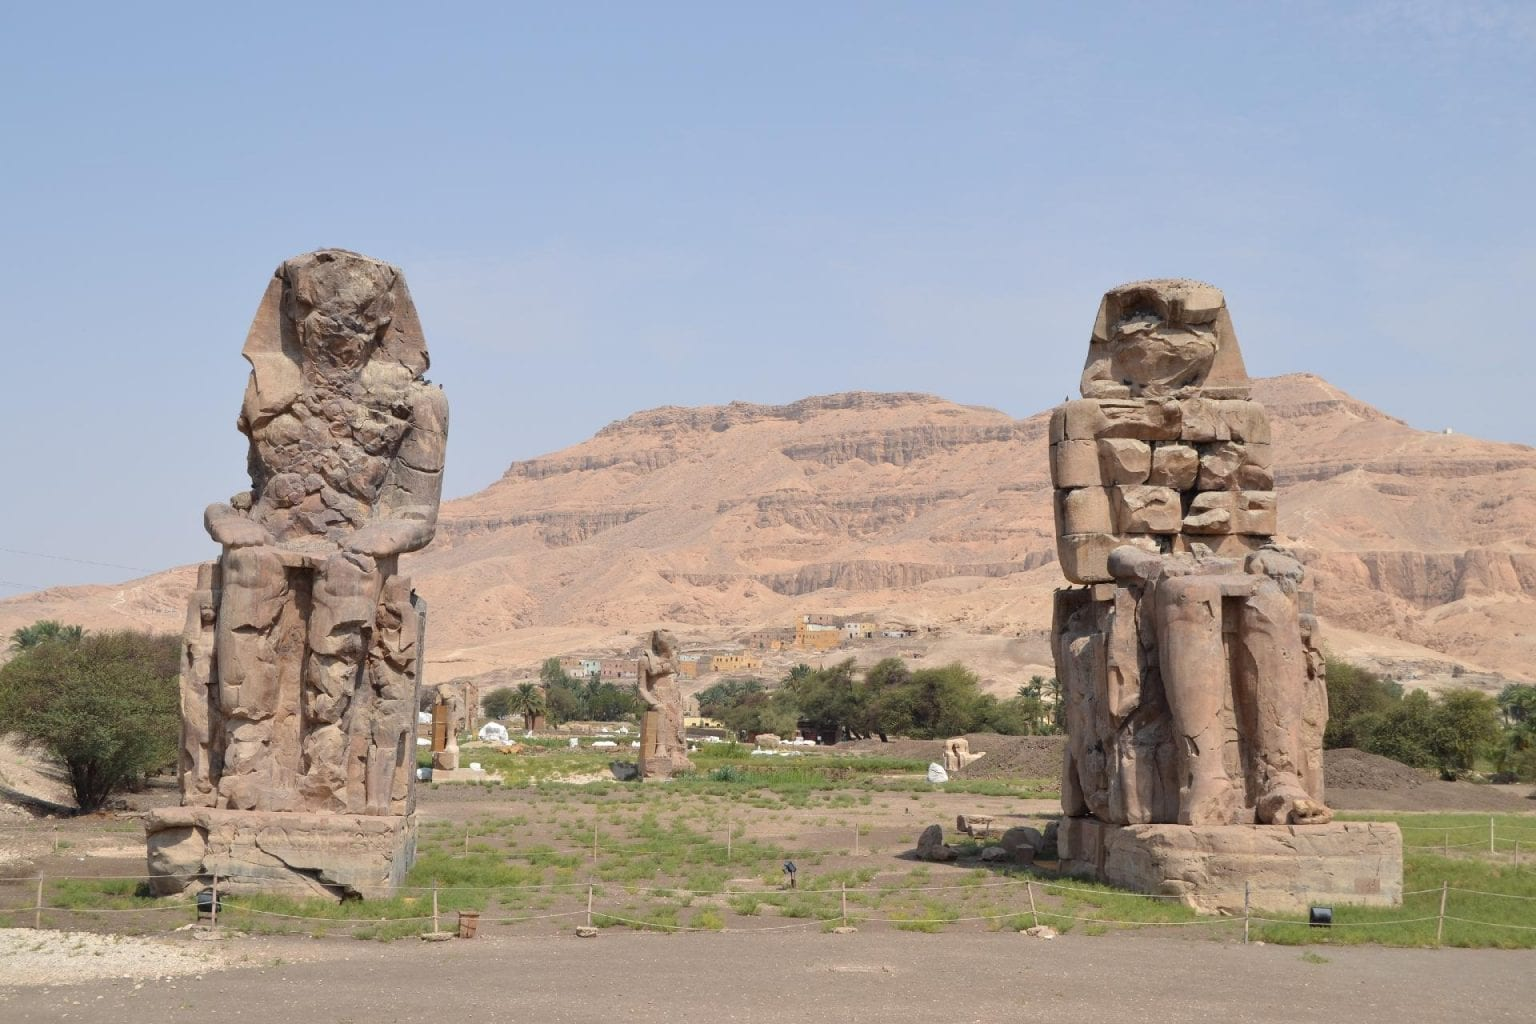 The Colossi of Memnon. Credit: Jumpstory